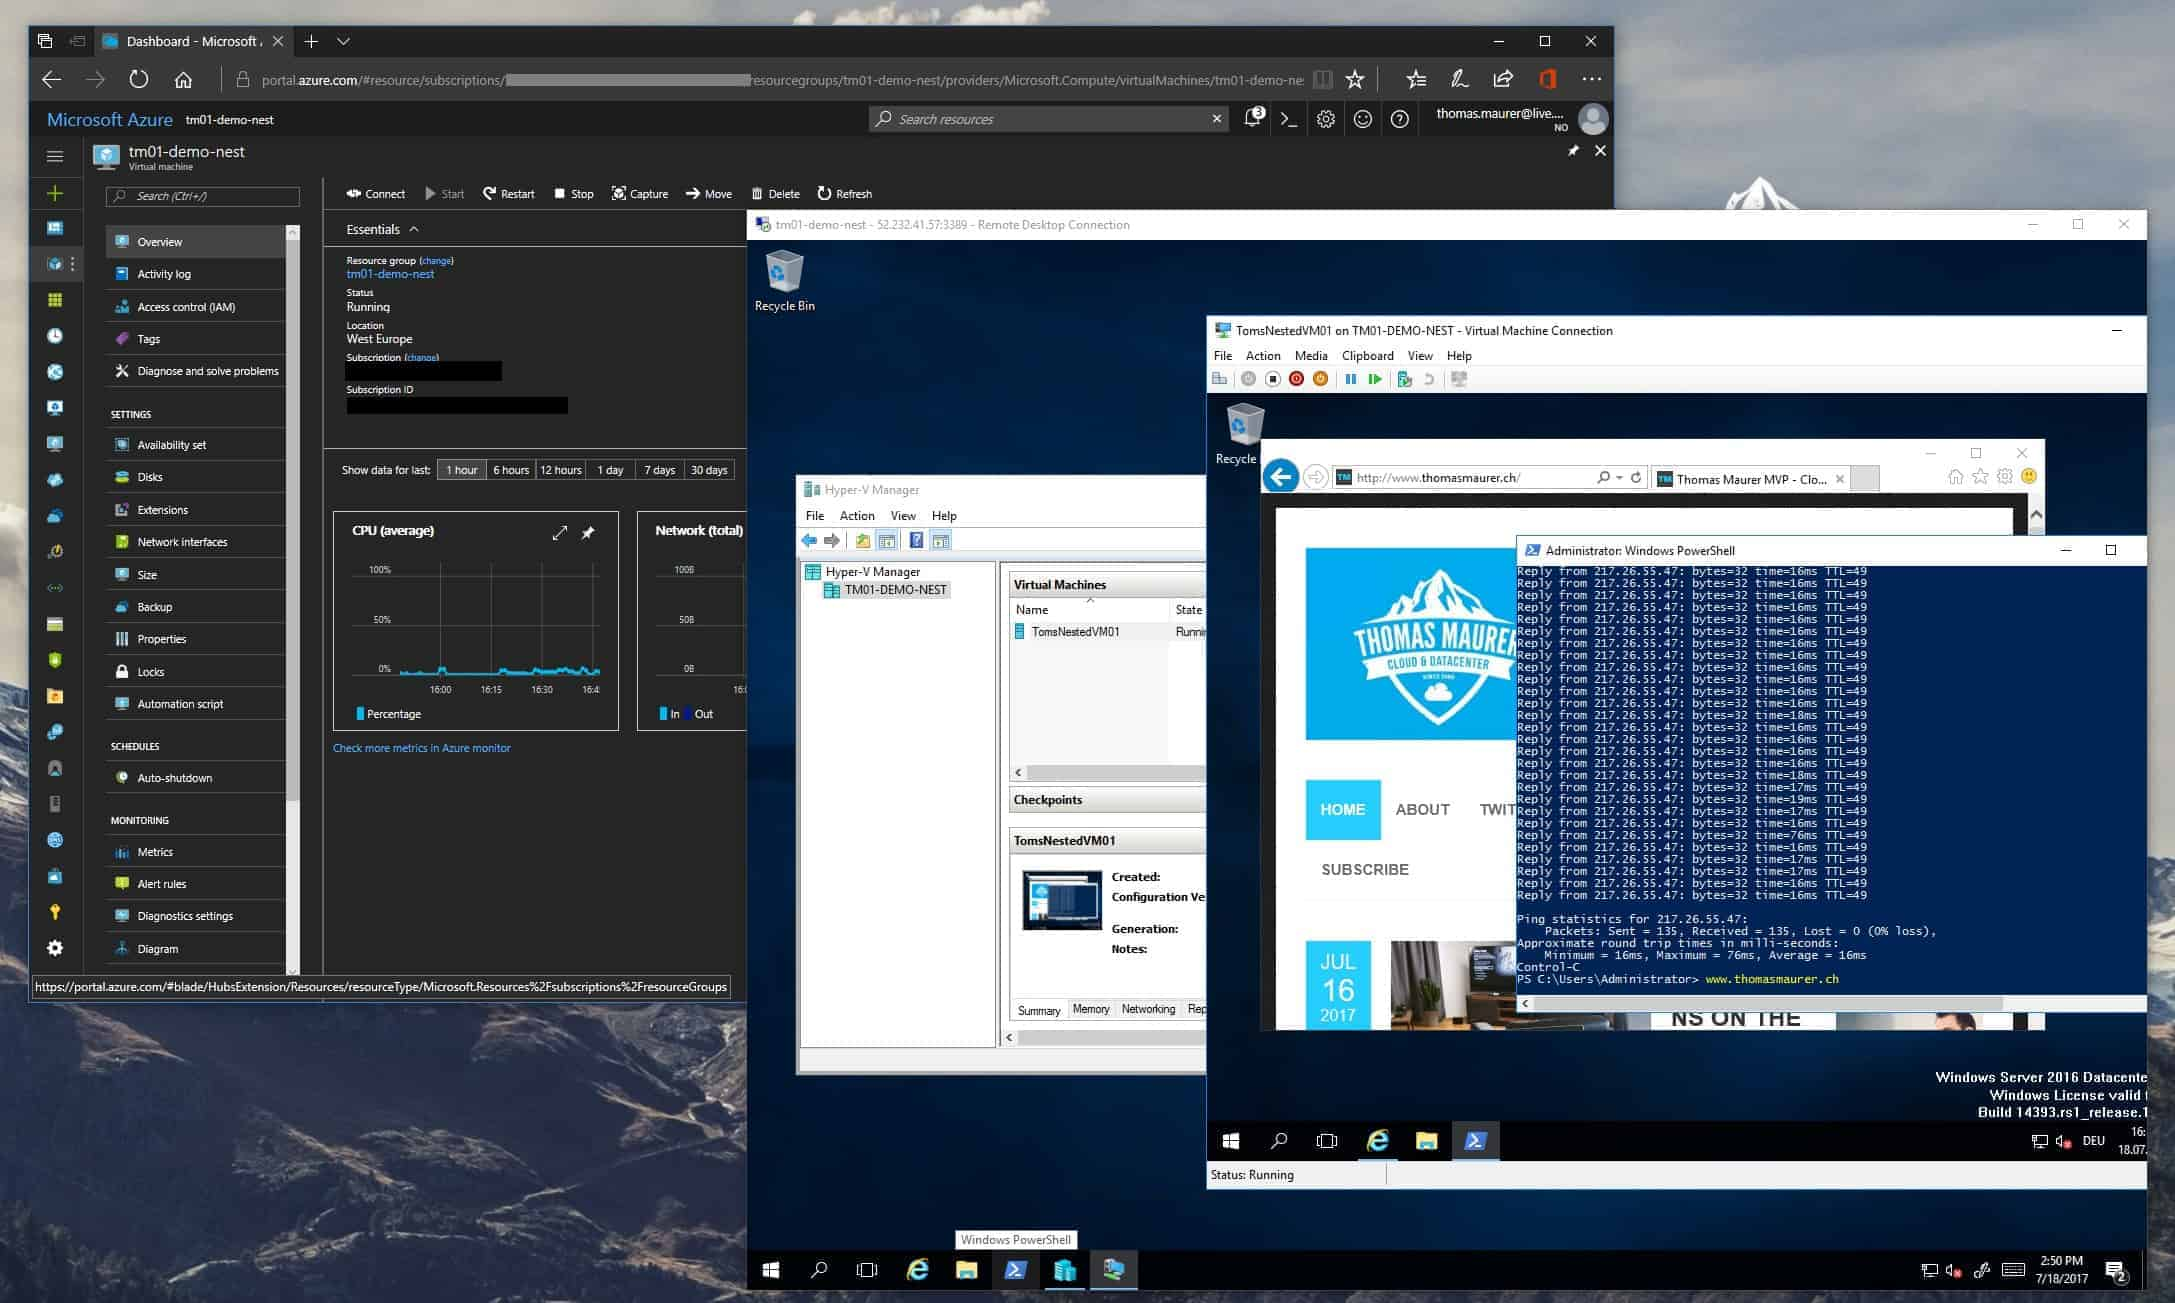 Now you can basically start to create Virtual Machines inside the Azure VM You can for example use an existing VHD VHDX or create a new VM using an ISO